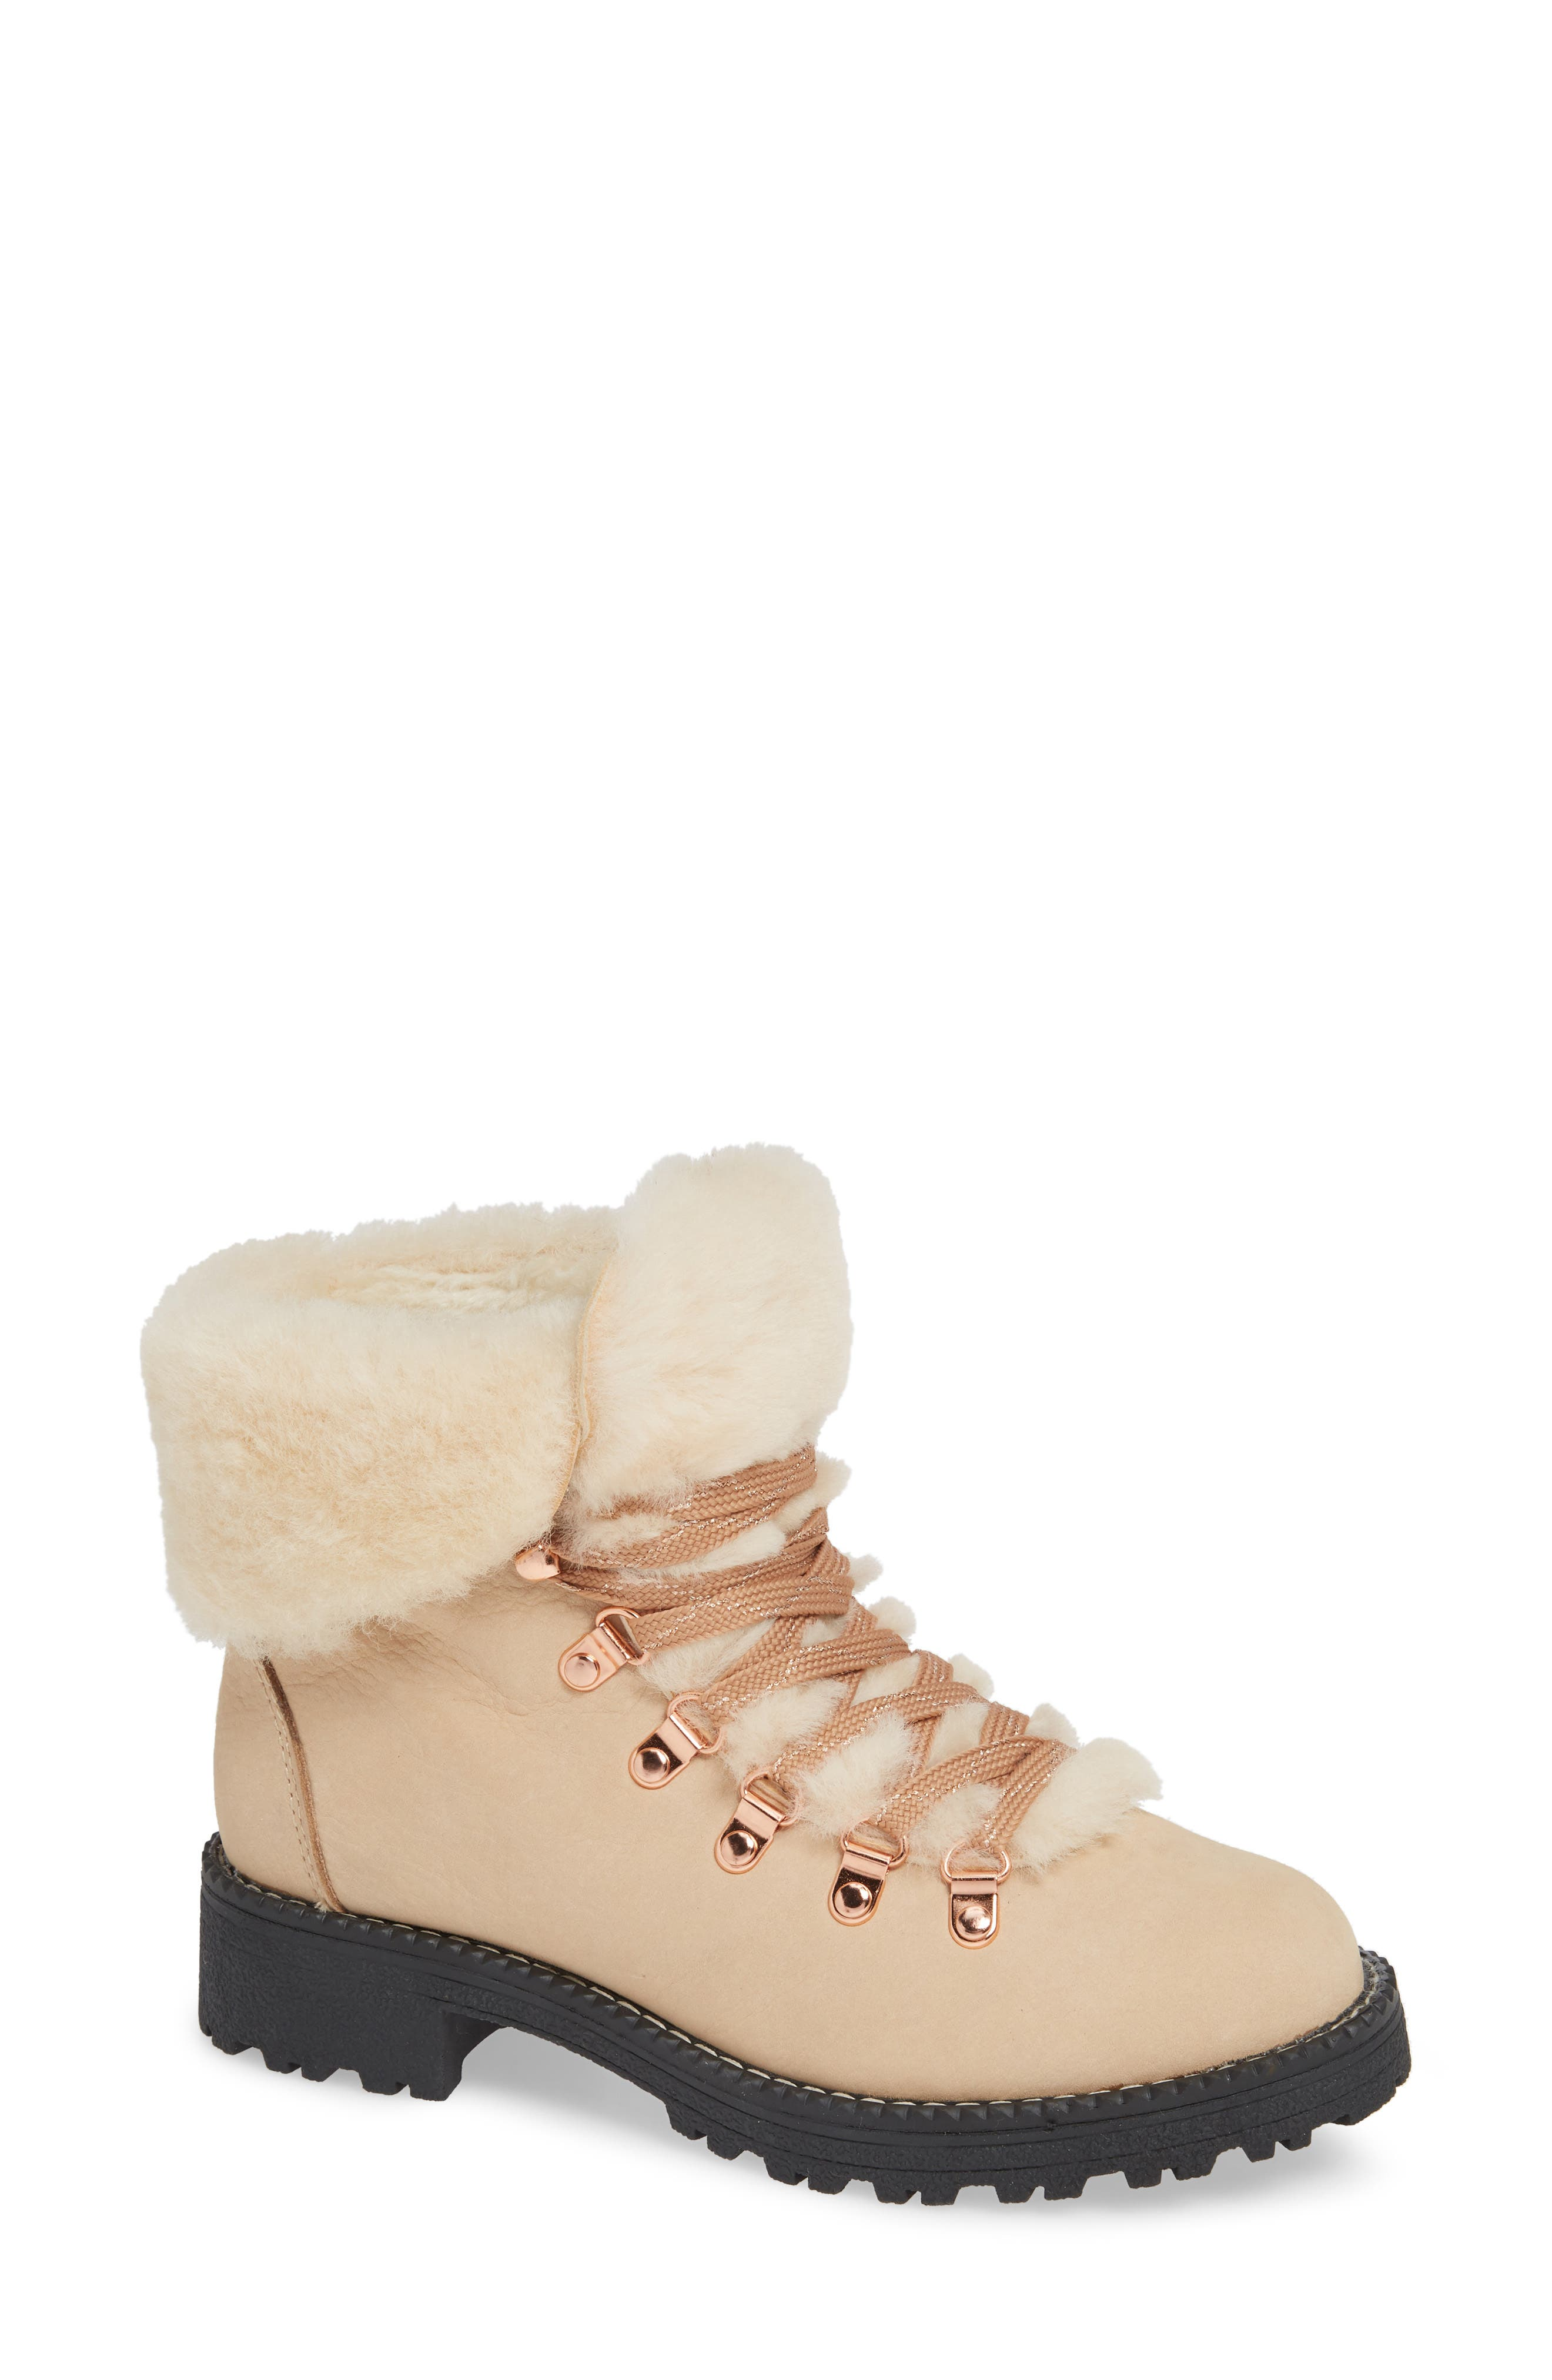 Nordic Genuine Shearling Cuff Winter Boot, Main, color, DUNE LEATHER